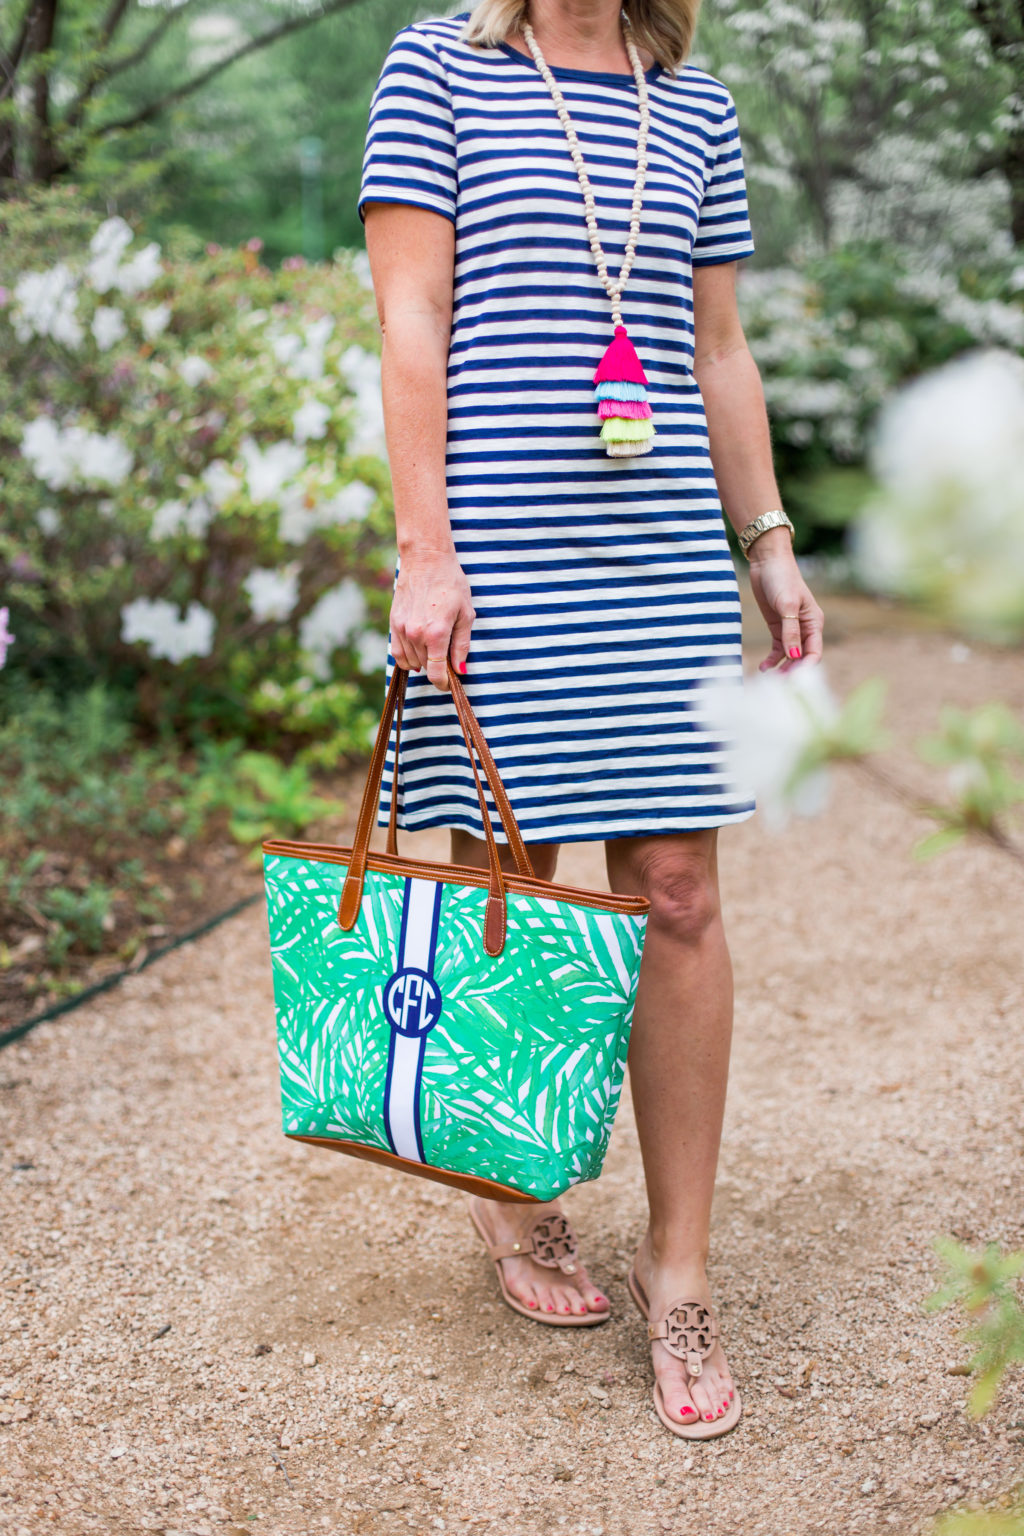 woman on oak lawn park path dallas wearing old navy striped dress and accessory concierge tassel necklace barrington tote bag